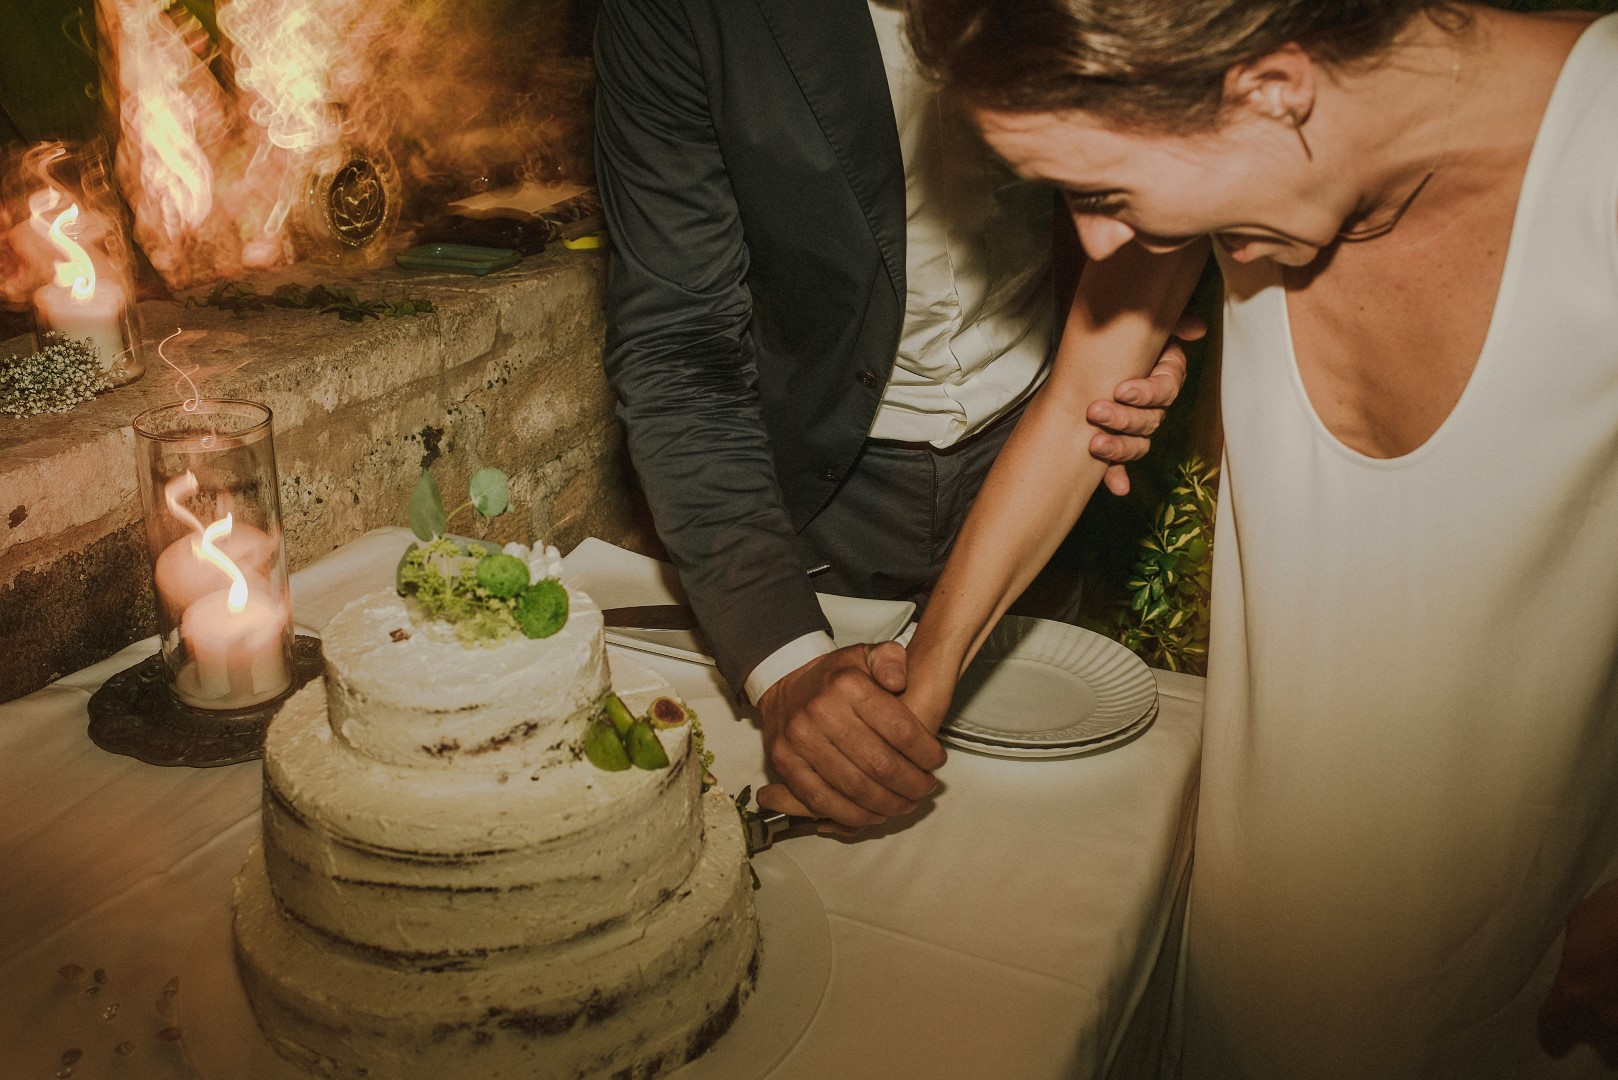 Photo of cake cutting. The groom is holding the bride's hand and they are cutting together. The cake is white, looks unfinished on purpose and there are green figs on it.